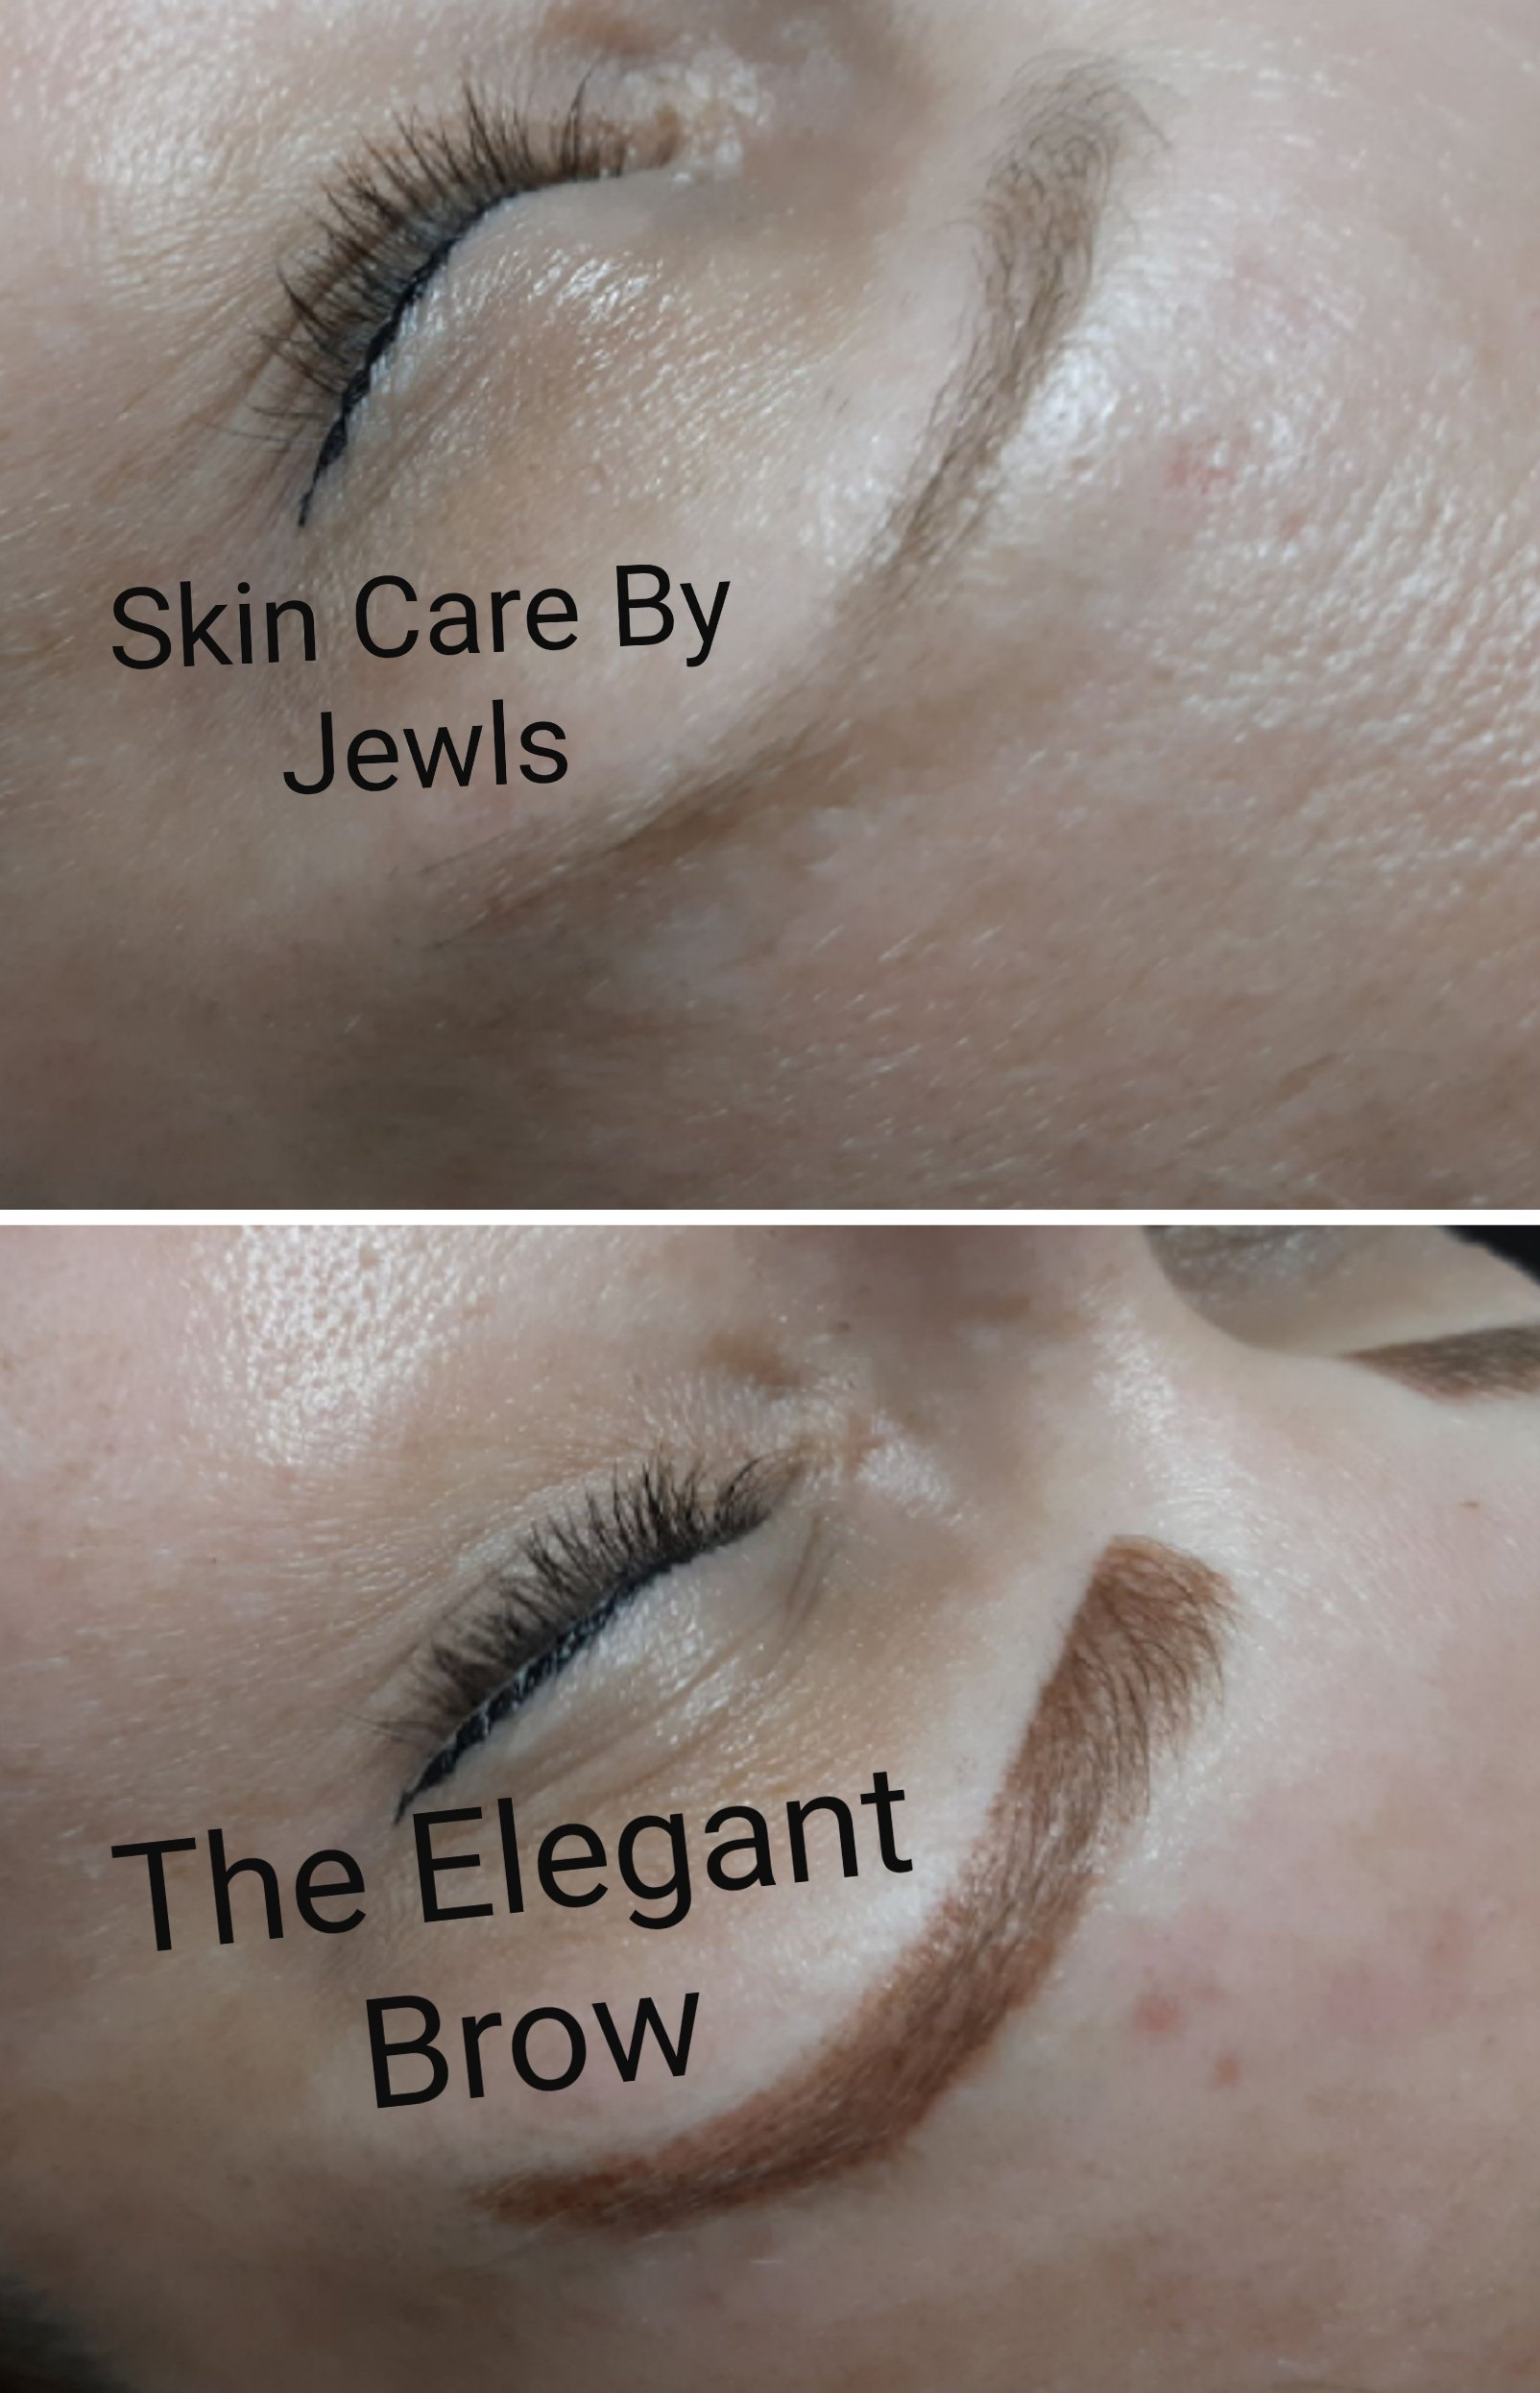 The Elegant Brow